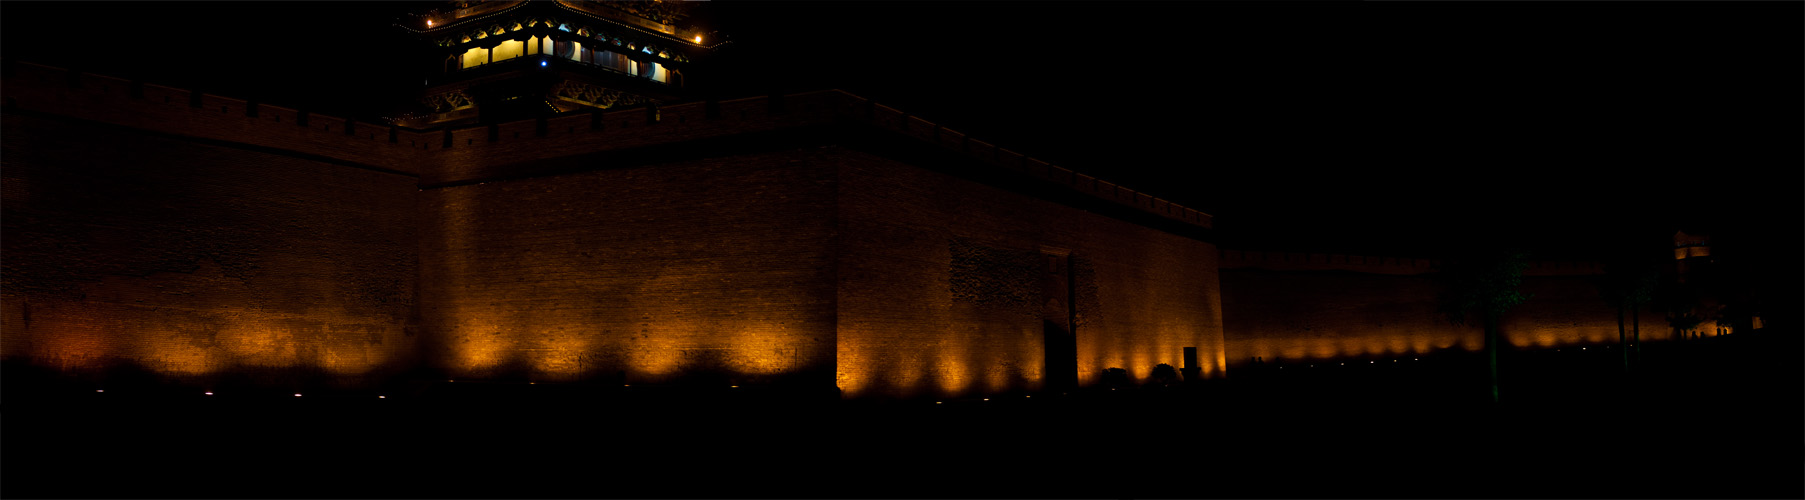 Ancient City Wall at Night - Pingyao, Shanxi, China - Daily Travel Photos